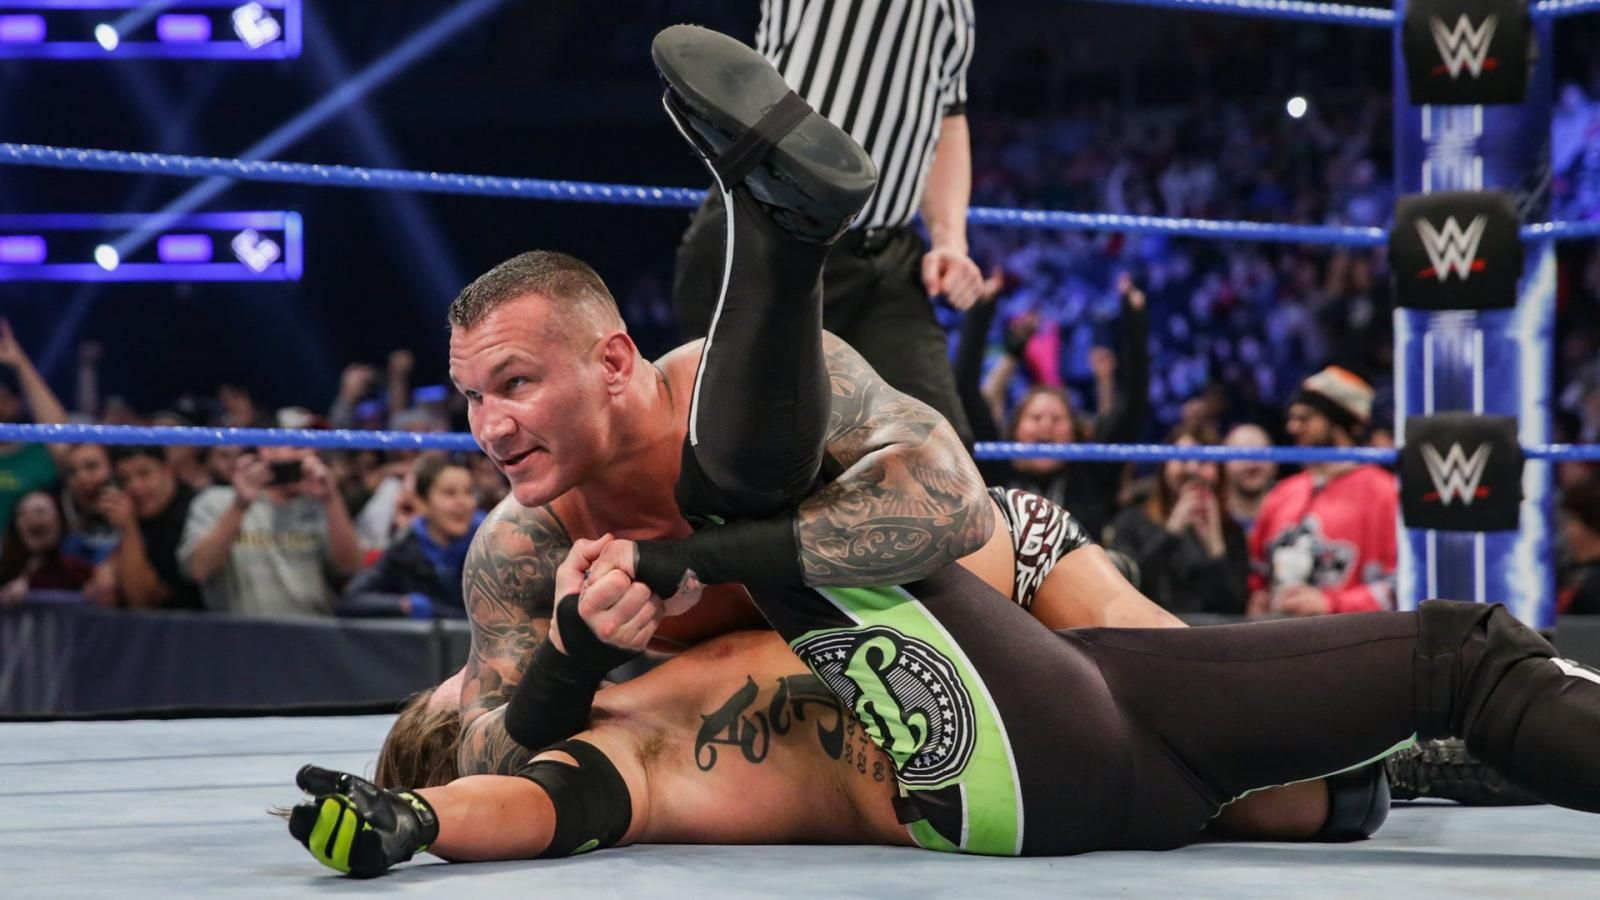 randy orton beats aj styles elimination chamber 2019 results